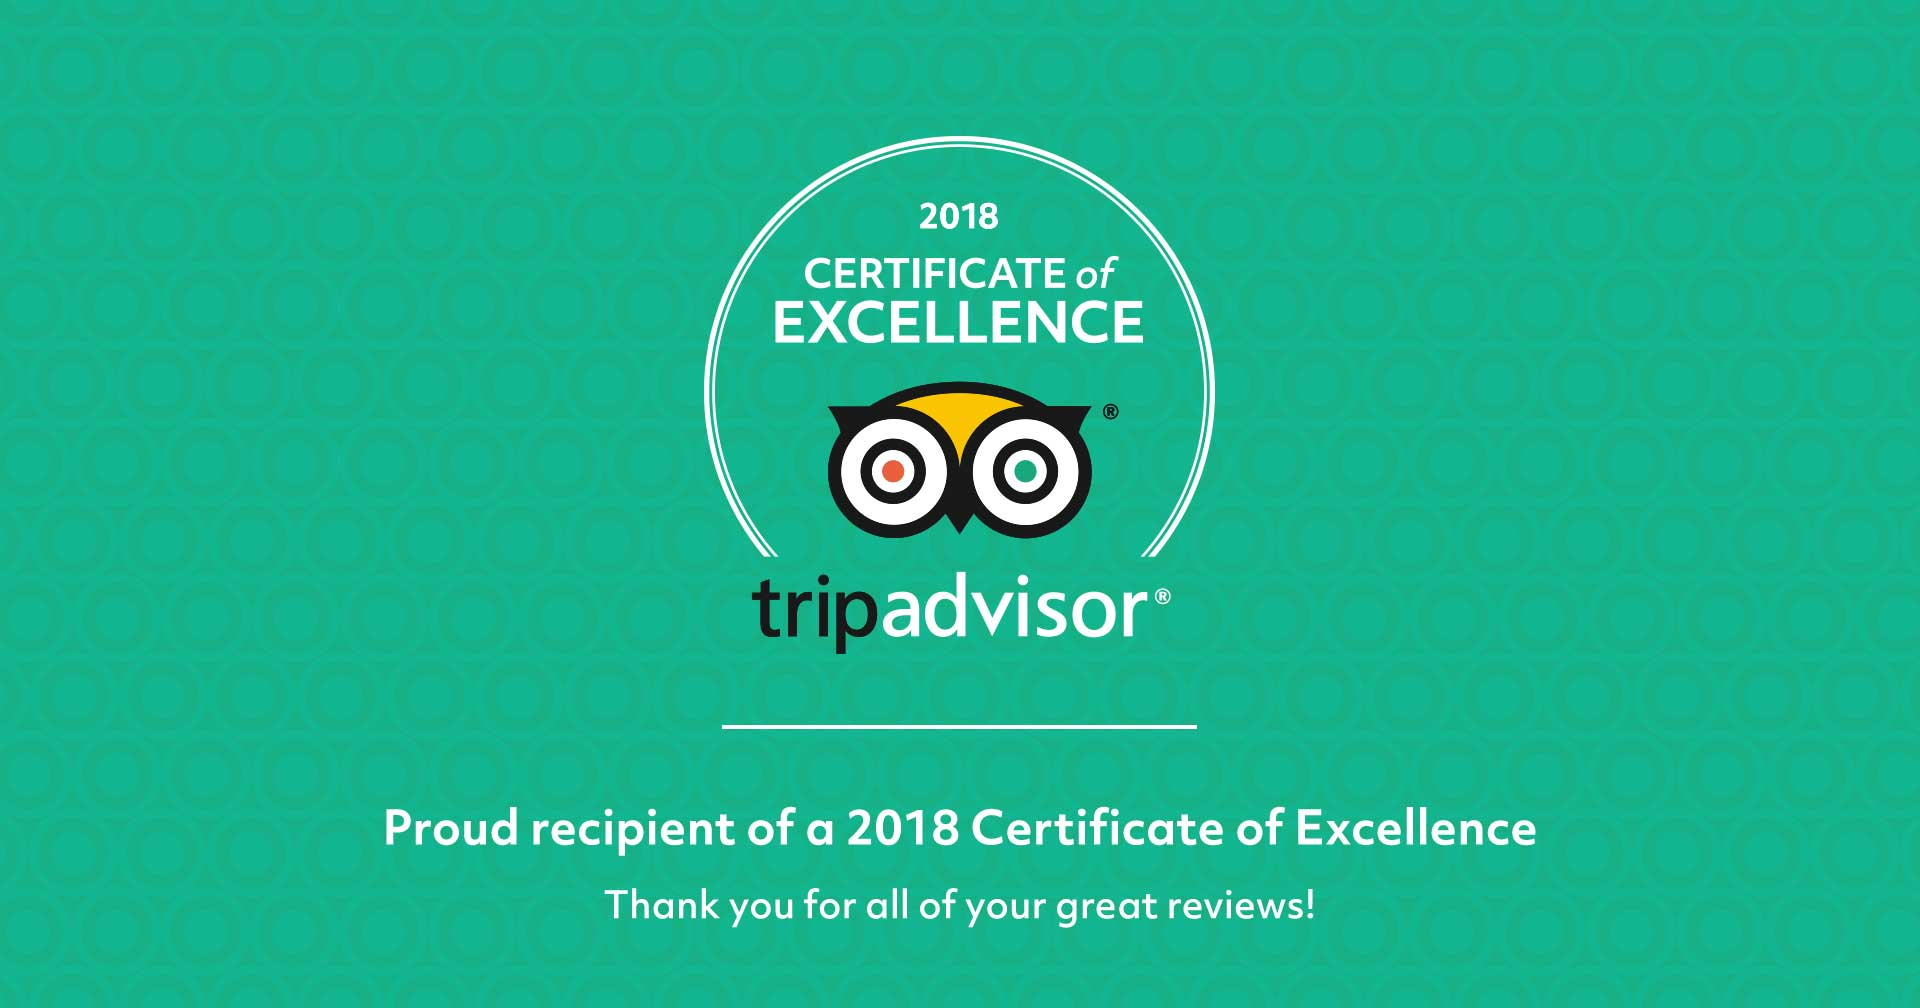 Ipoh Secrets 2018 Certificate of Excellence